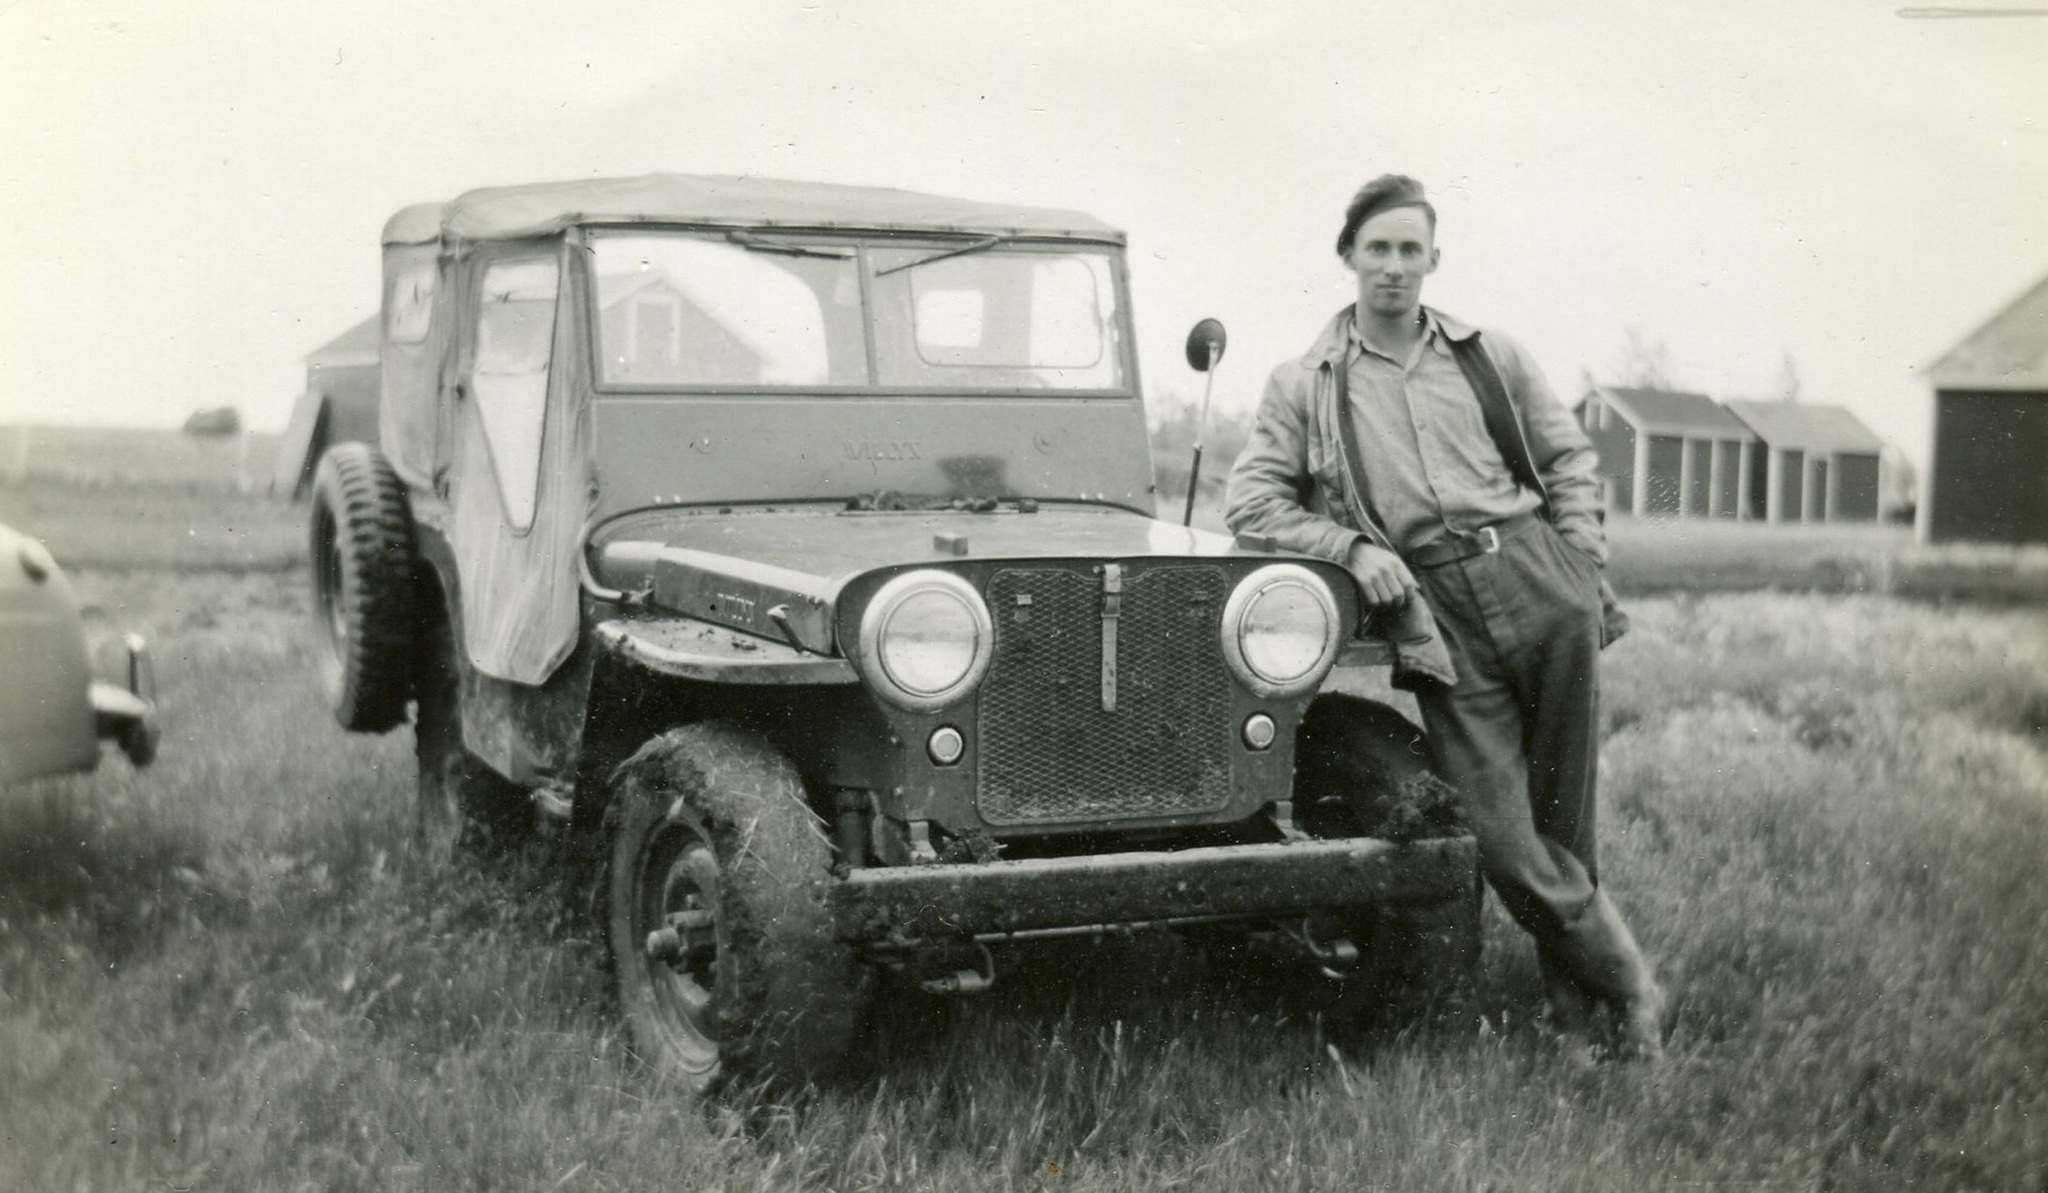 The Jeep Leonard Rance drove in 1948 still runs and remains in the family. (Supplied)</p>